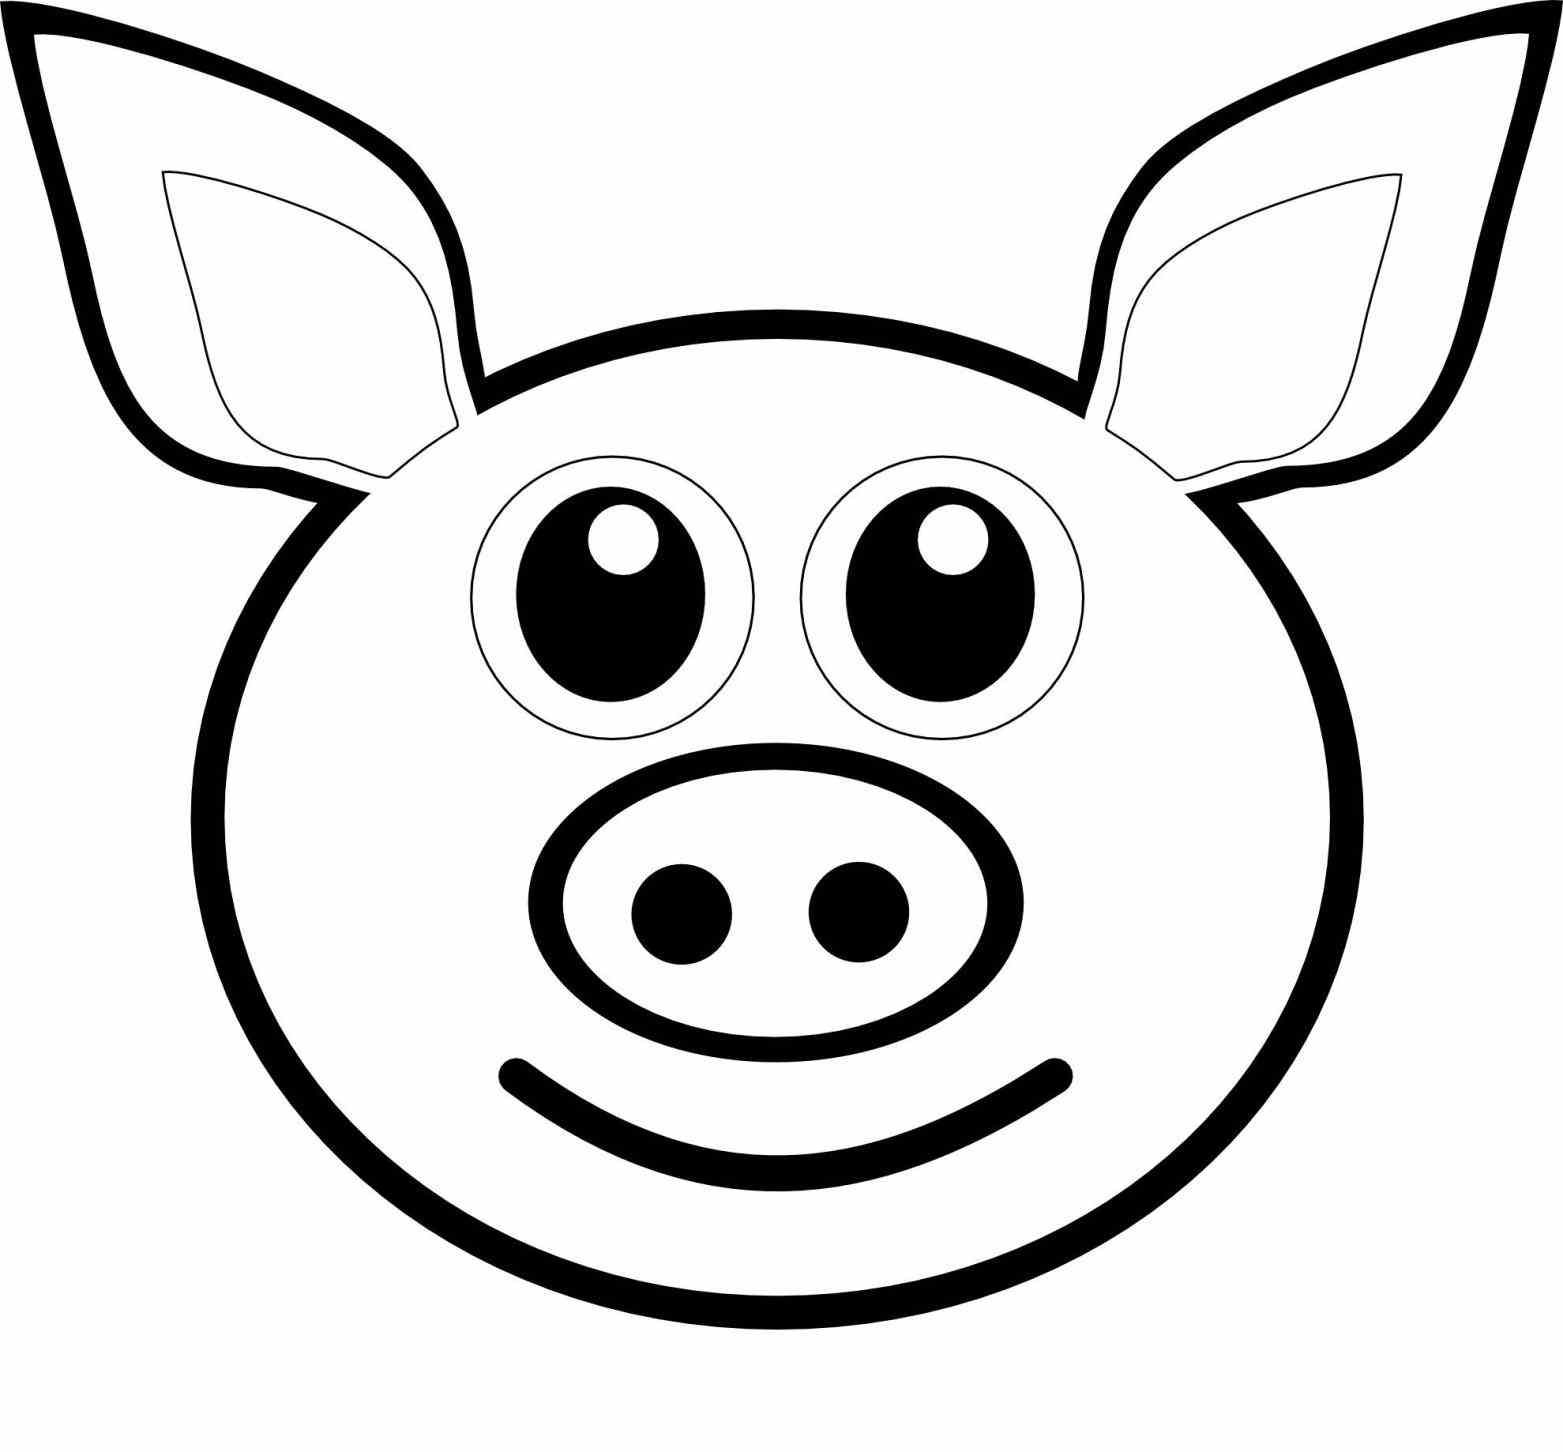 how to draw a pig standing up cute pig clip art pig clip art image black and draw up a pig how to standing